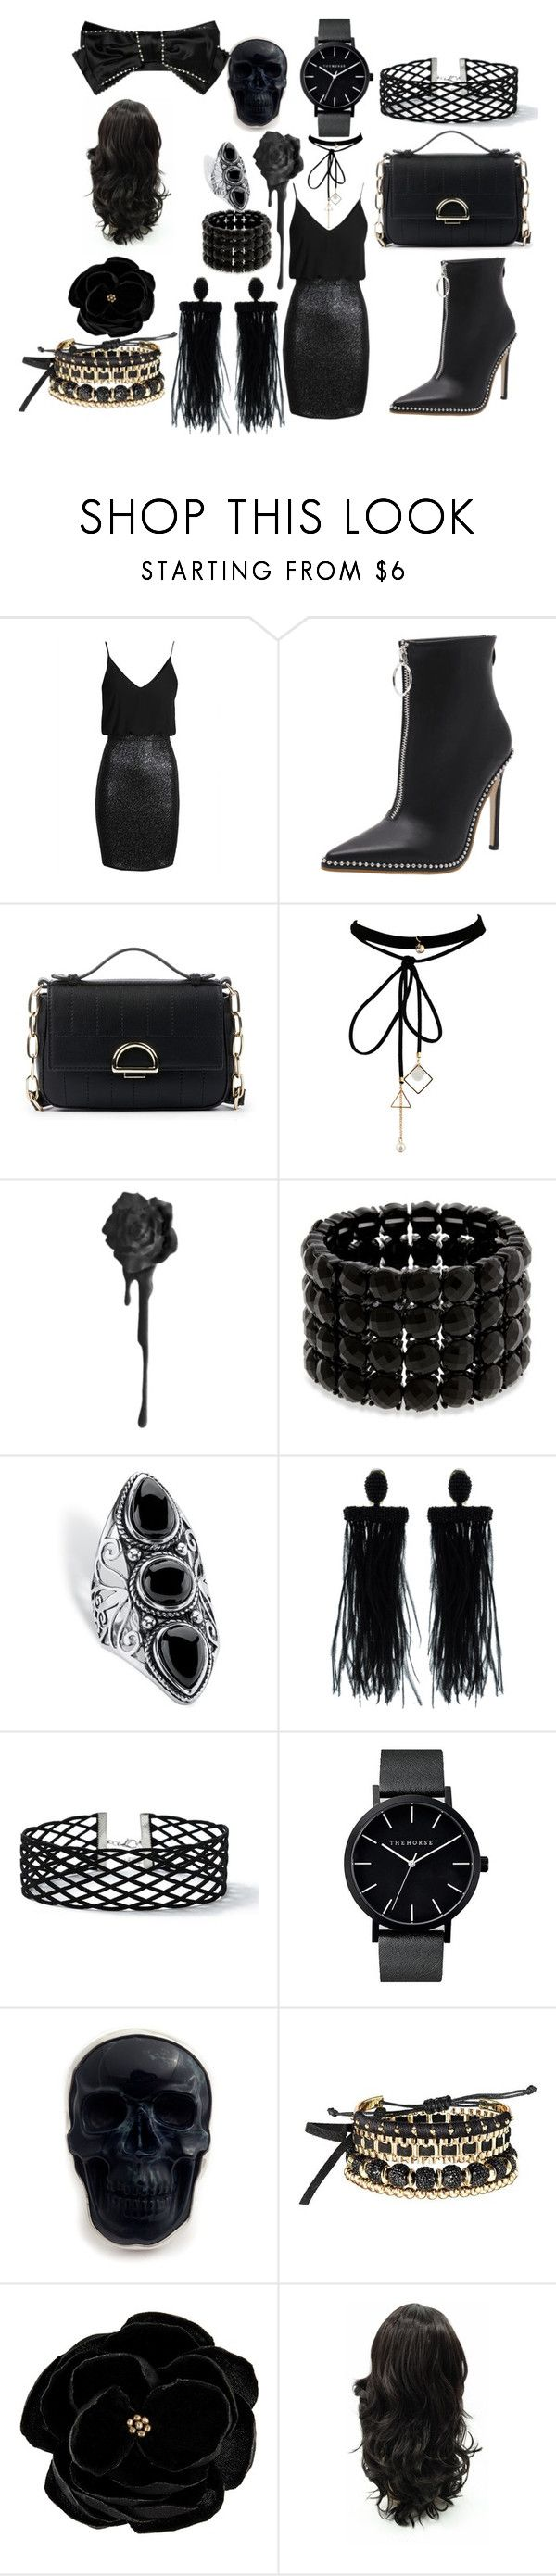 """goth date"" by kennady-simmons6 ❤ liked on Polyvore featuring TFNC, Sole Society, WithChic, Erica Lyons, Palm Beach Jewelry, Oscar de la Renta, Miss Selfridge, Avon, SWILDENS and Gucci"